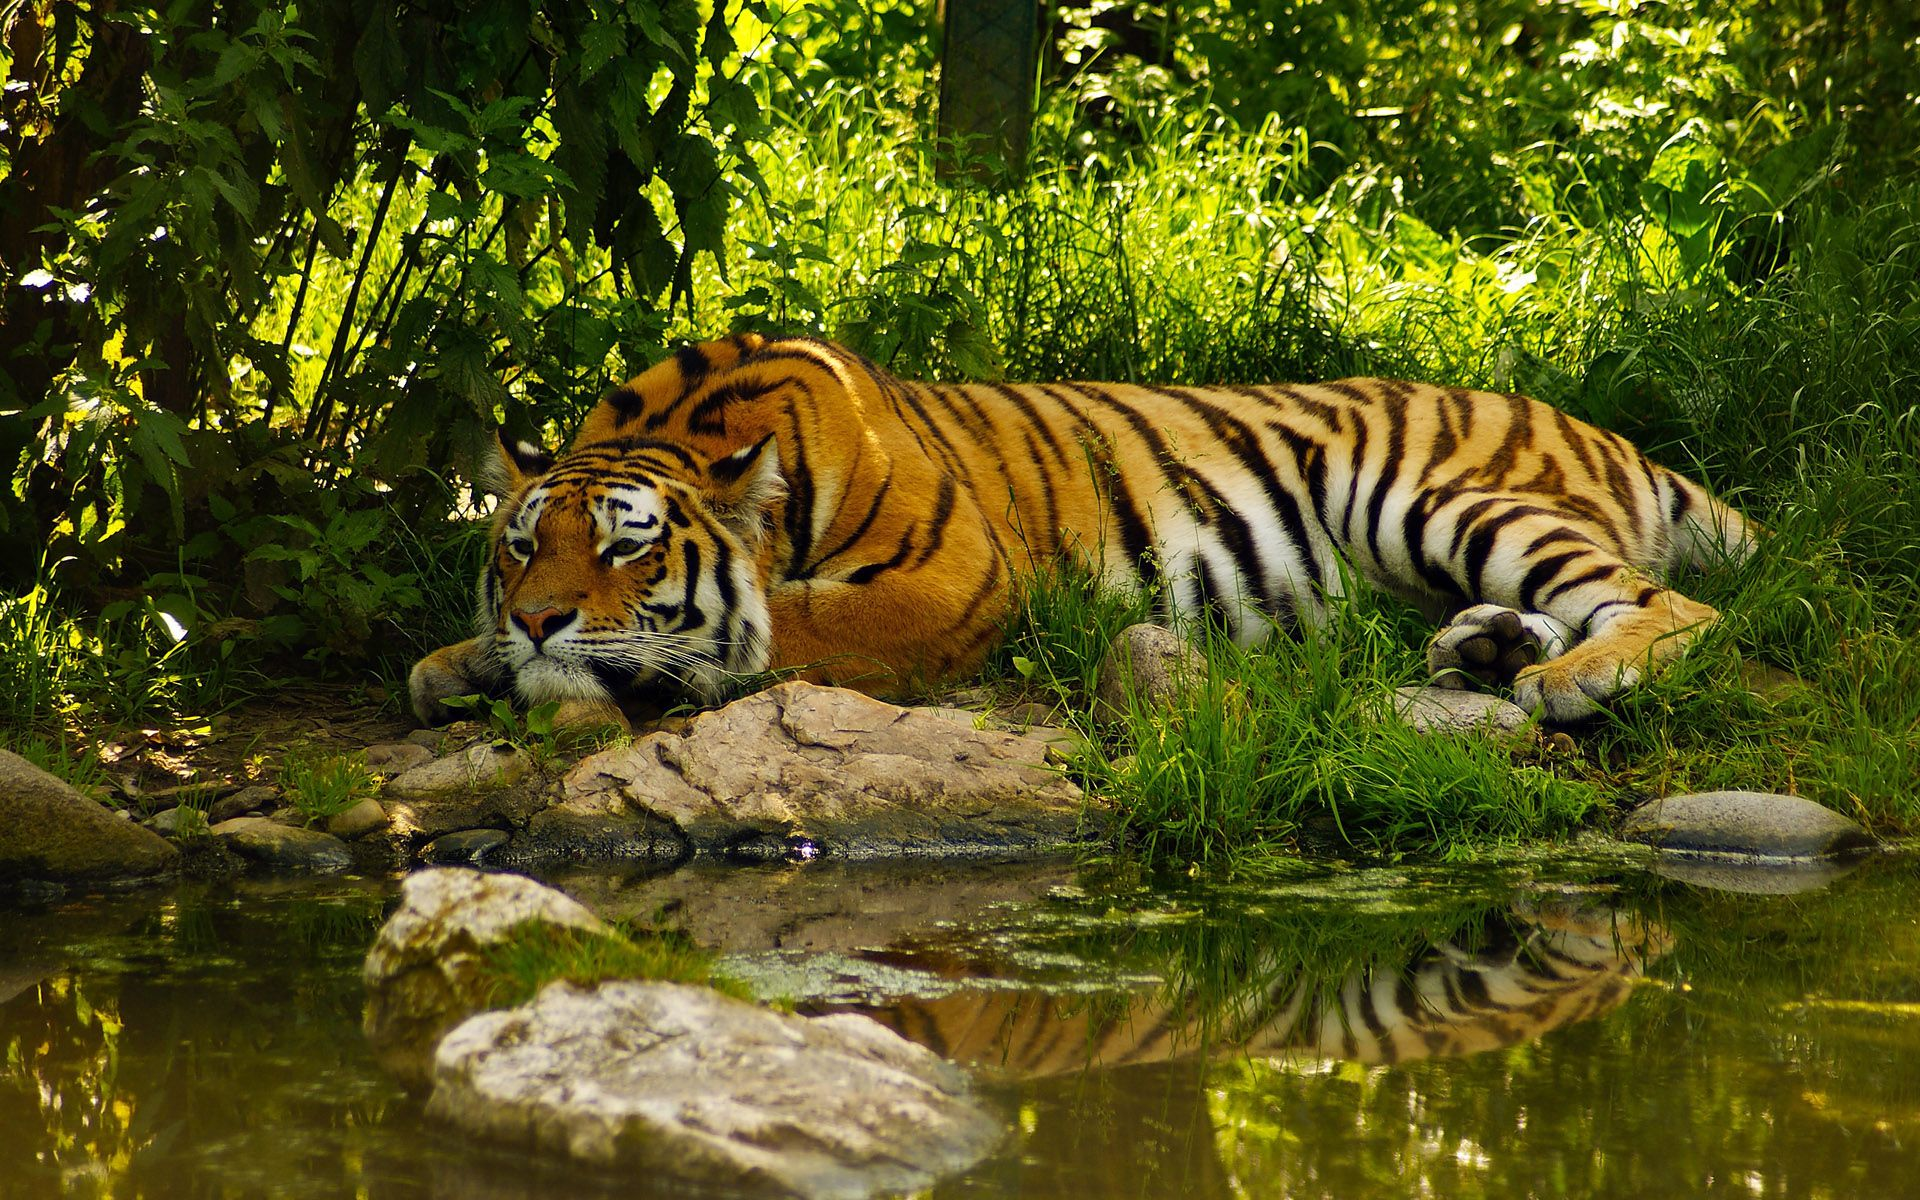 Most Beautiful 4k Nature Pictures Google Search Tiger Wallpaper Animal Wallpaper Nature Animals